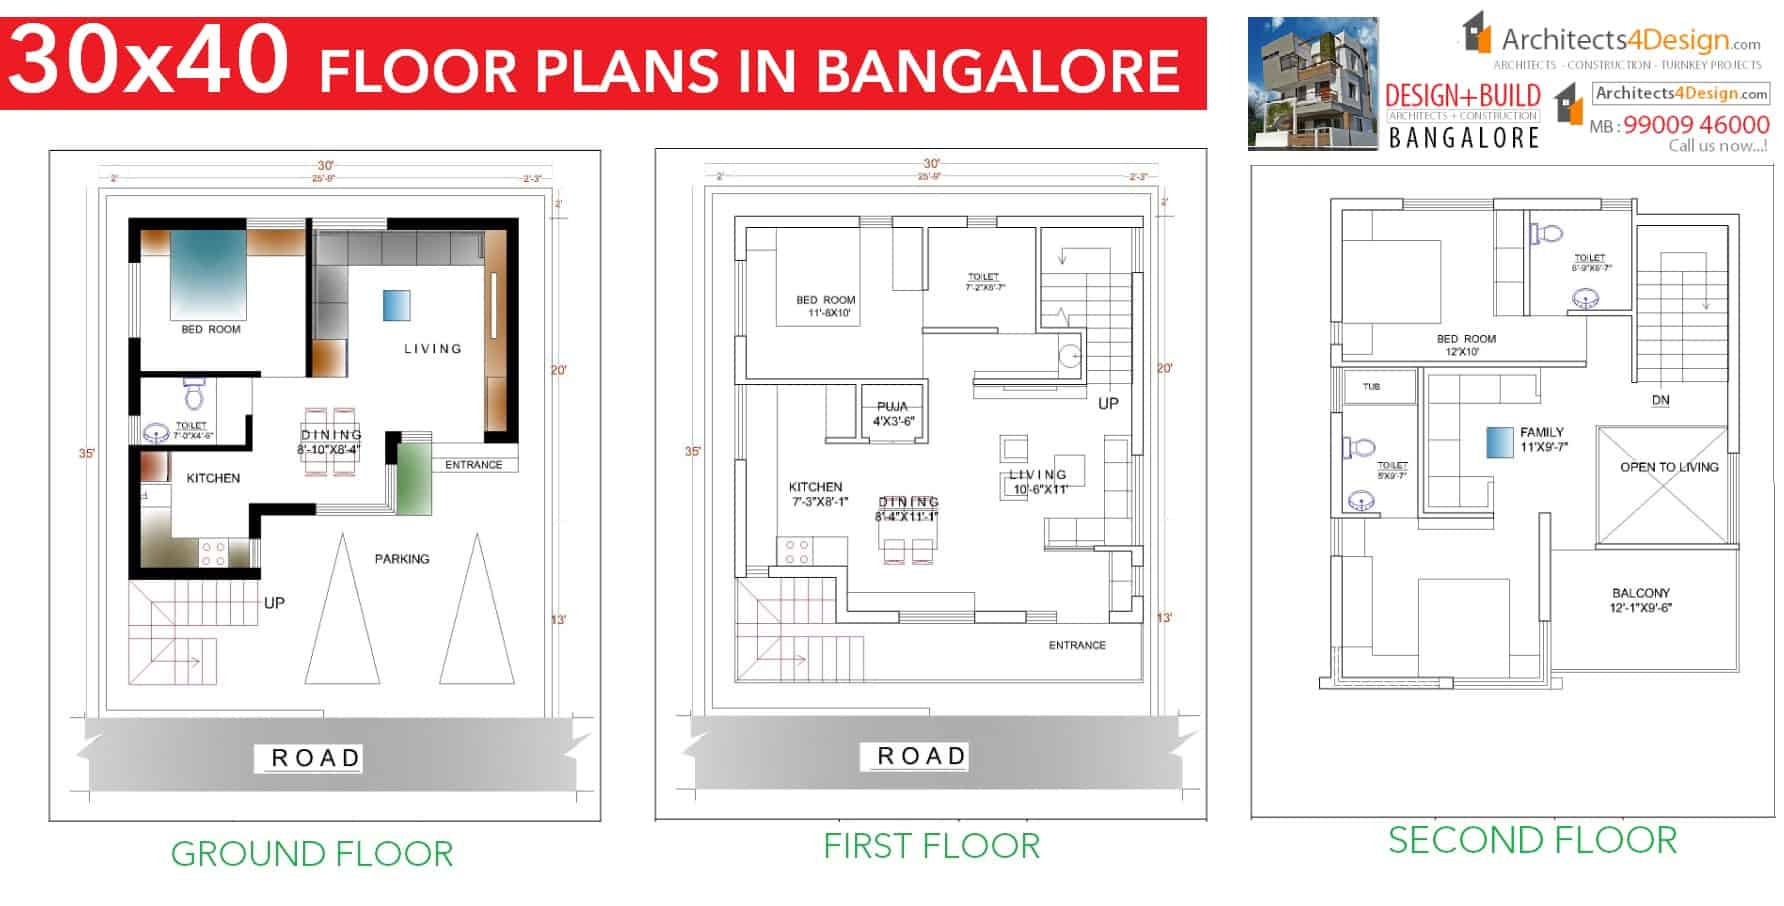 First Floor Master Bedroom 30x40 House Plans In Bangalore For G 1 G 2 G 3 G 4 Floors